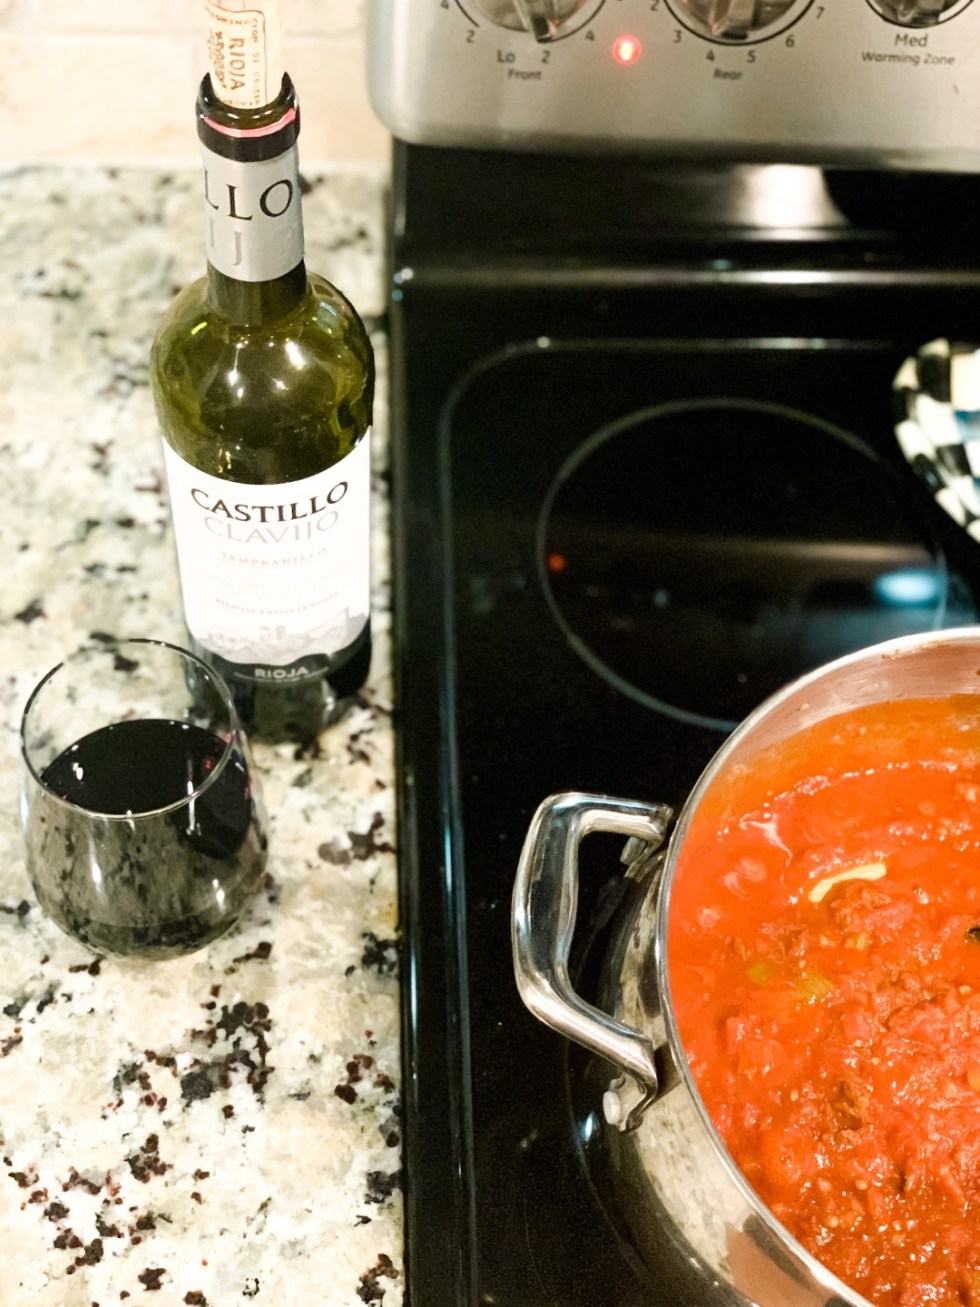 20 Moments I am Grateful for in 2020 - I'm Fixin' To - @imfixintoblog |Moments to be Grateful for by popular NC lifestyle blog, I'm Fixin' To: image of a bottle of red wine and a cup of red wine next to a pot of spaghetti sauce.